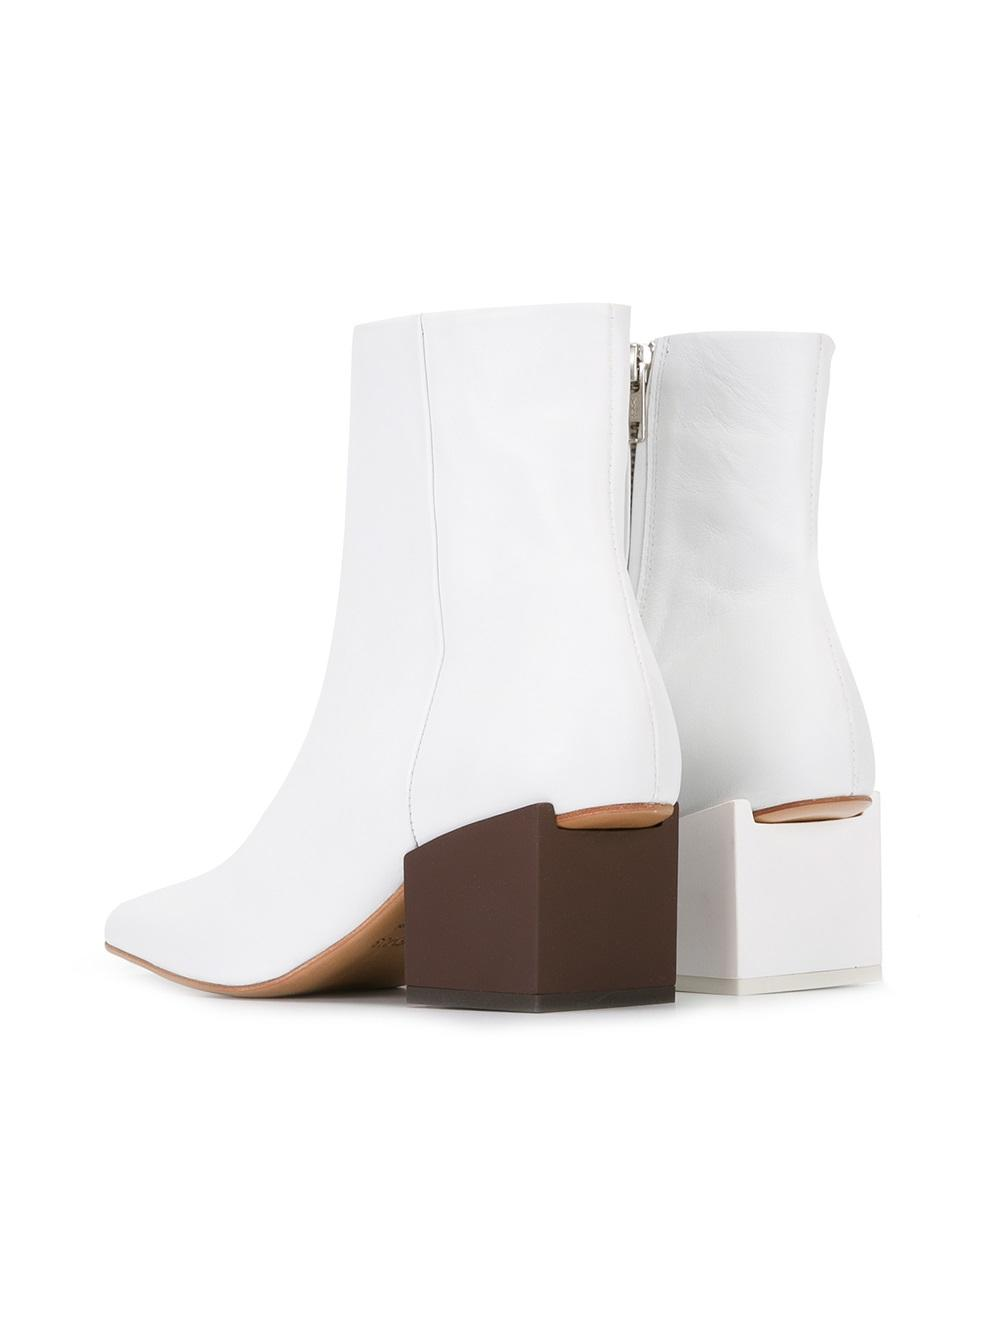 say hi to_ Jacquemus Boots